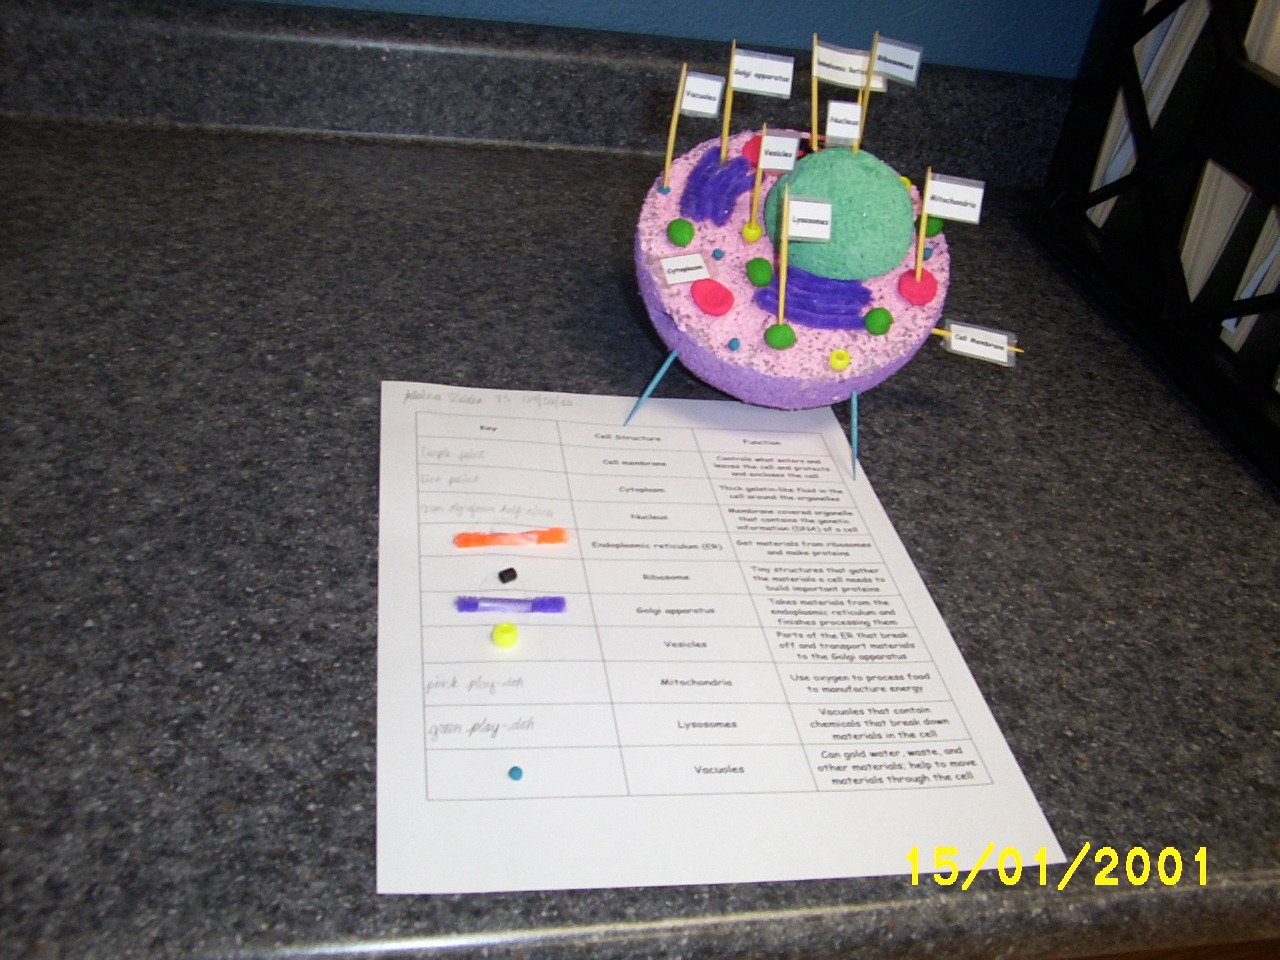 3D Animal Cell Project Ideas http://stpvogelweid.edublogs.org/2010/11/04/the-7th-grade-science-project-on-plant-and-animal-cells/